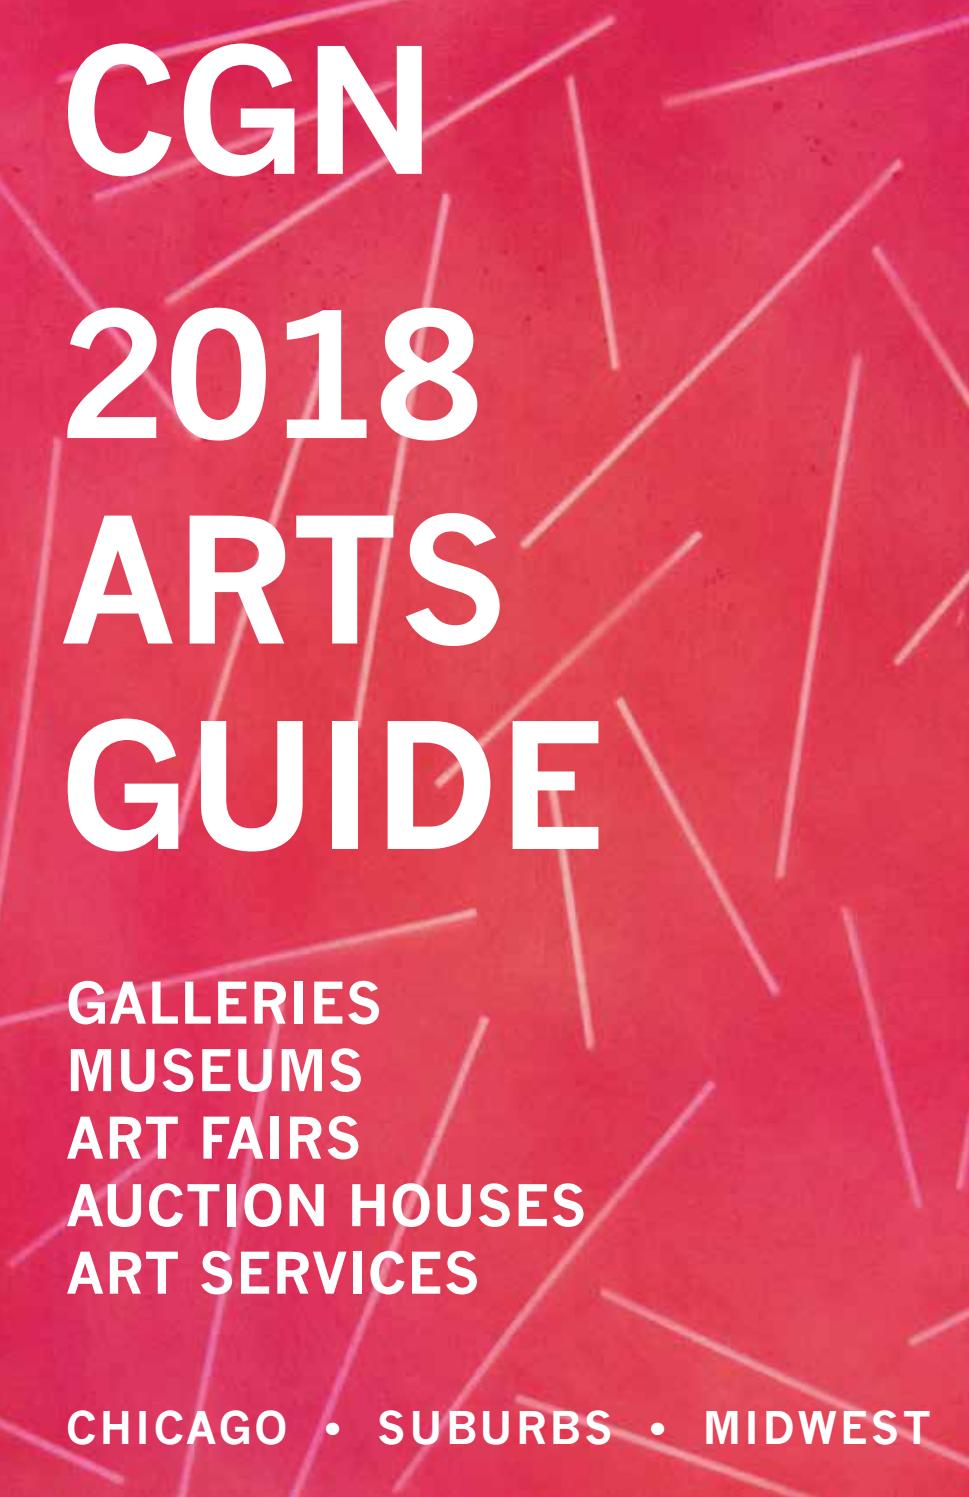 CGN 2018 Arts Guide by Chicago Gallery News - issuu